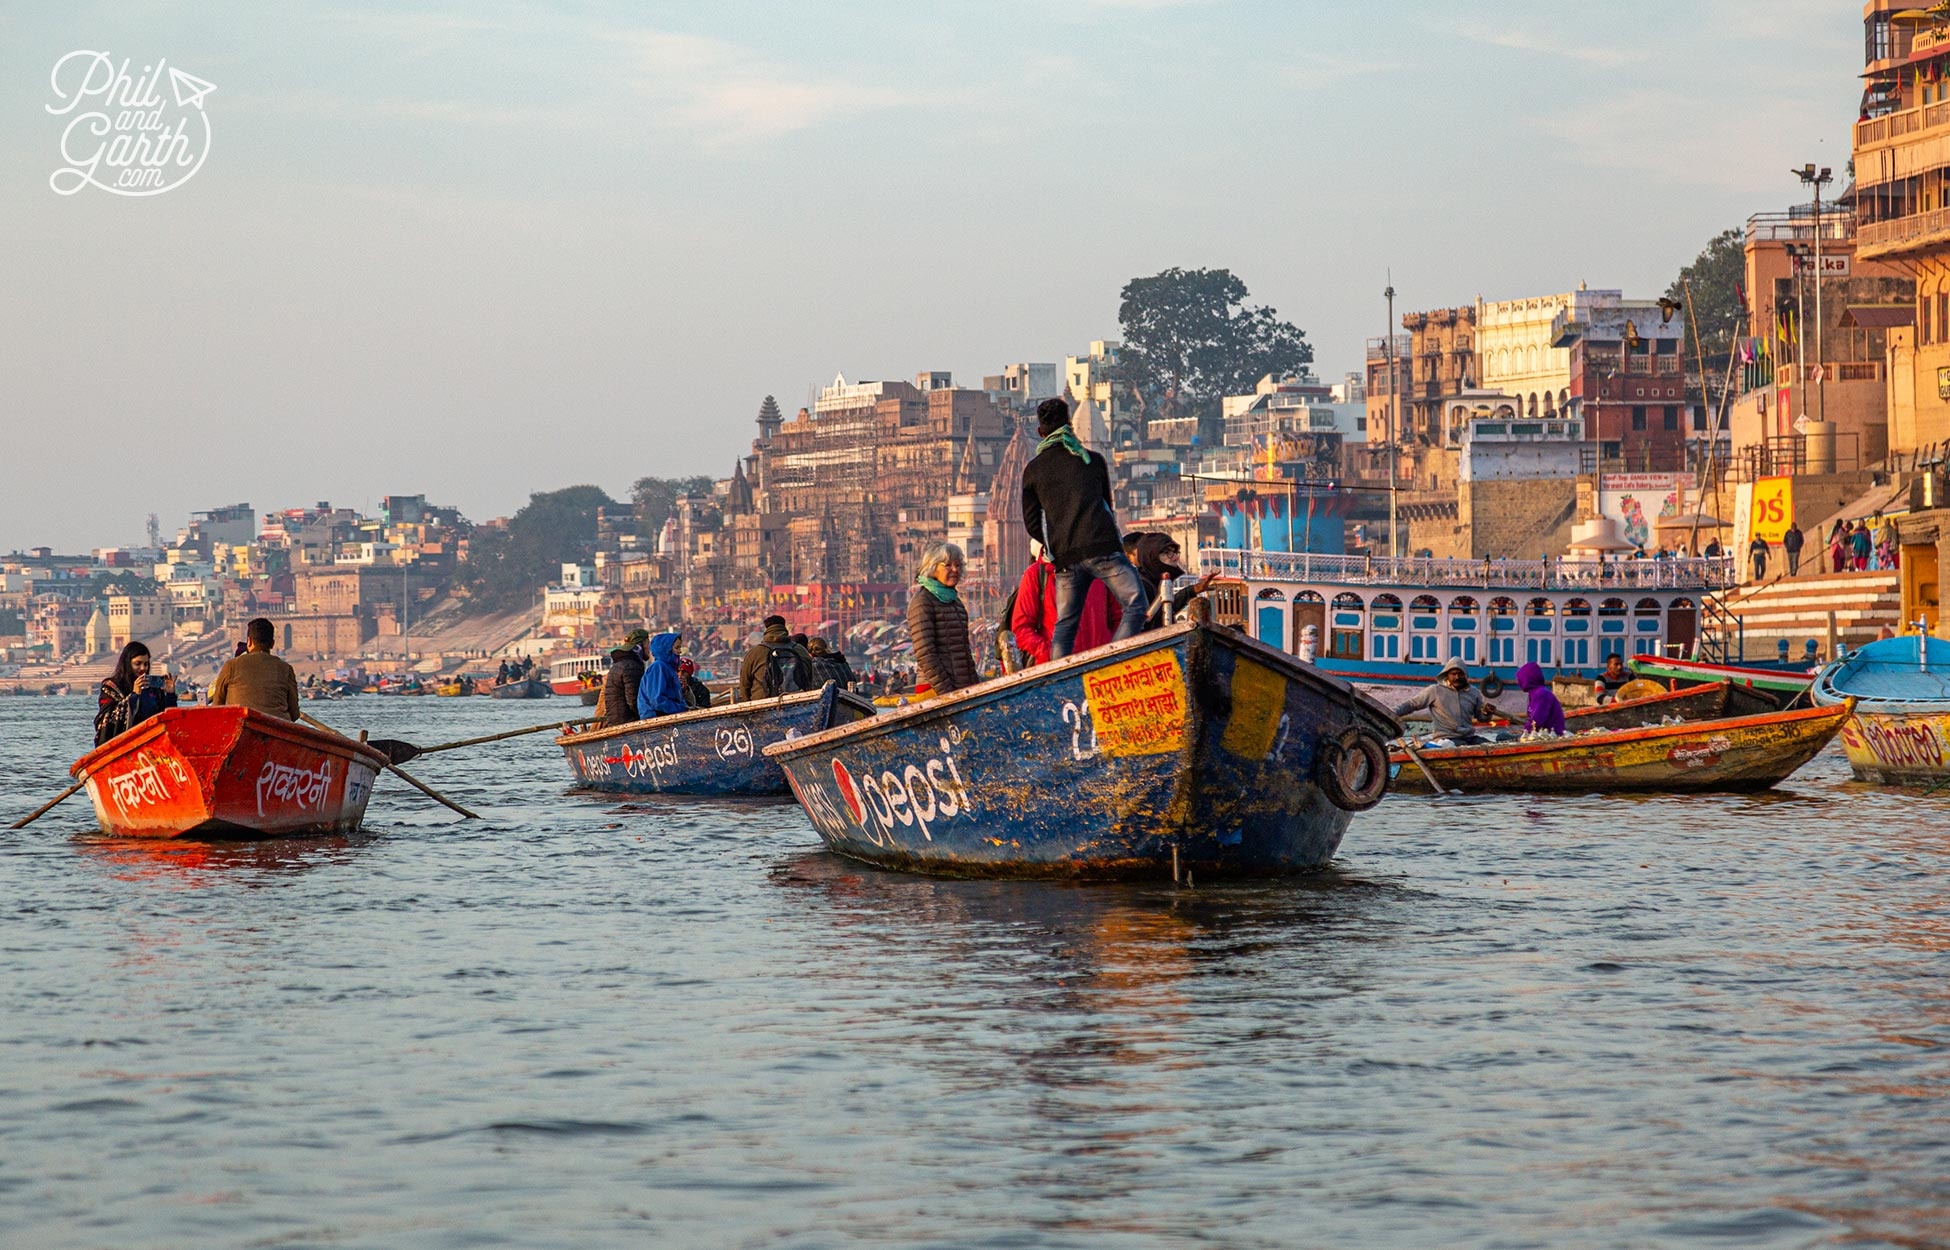 We thought an early morning boat ride down the River Ganges is one of the best ways to experience Varanasi